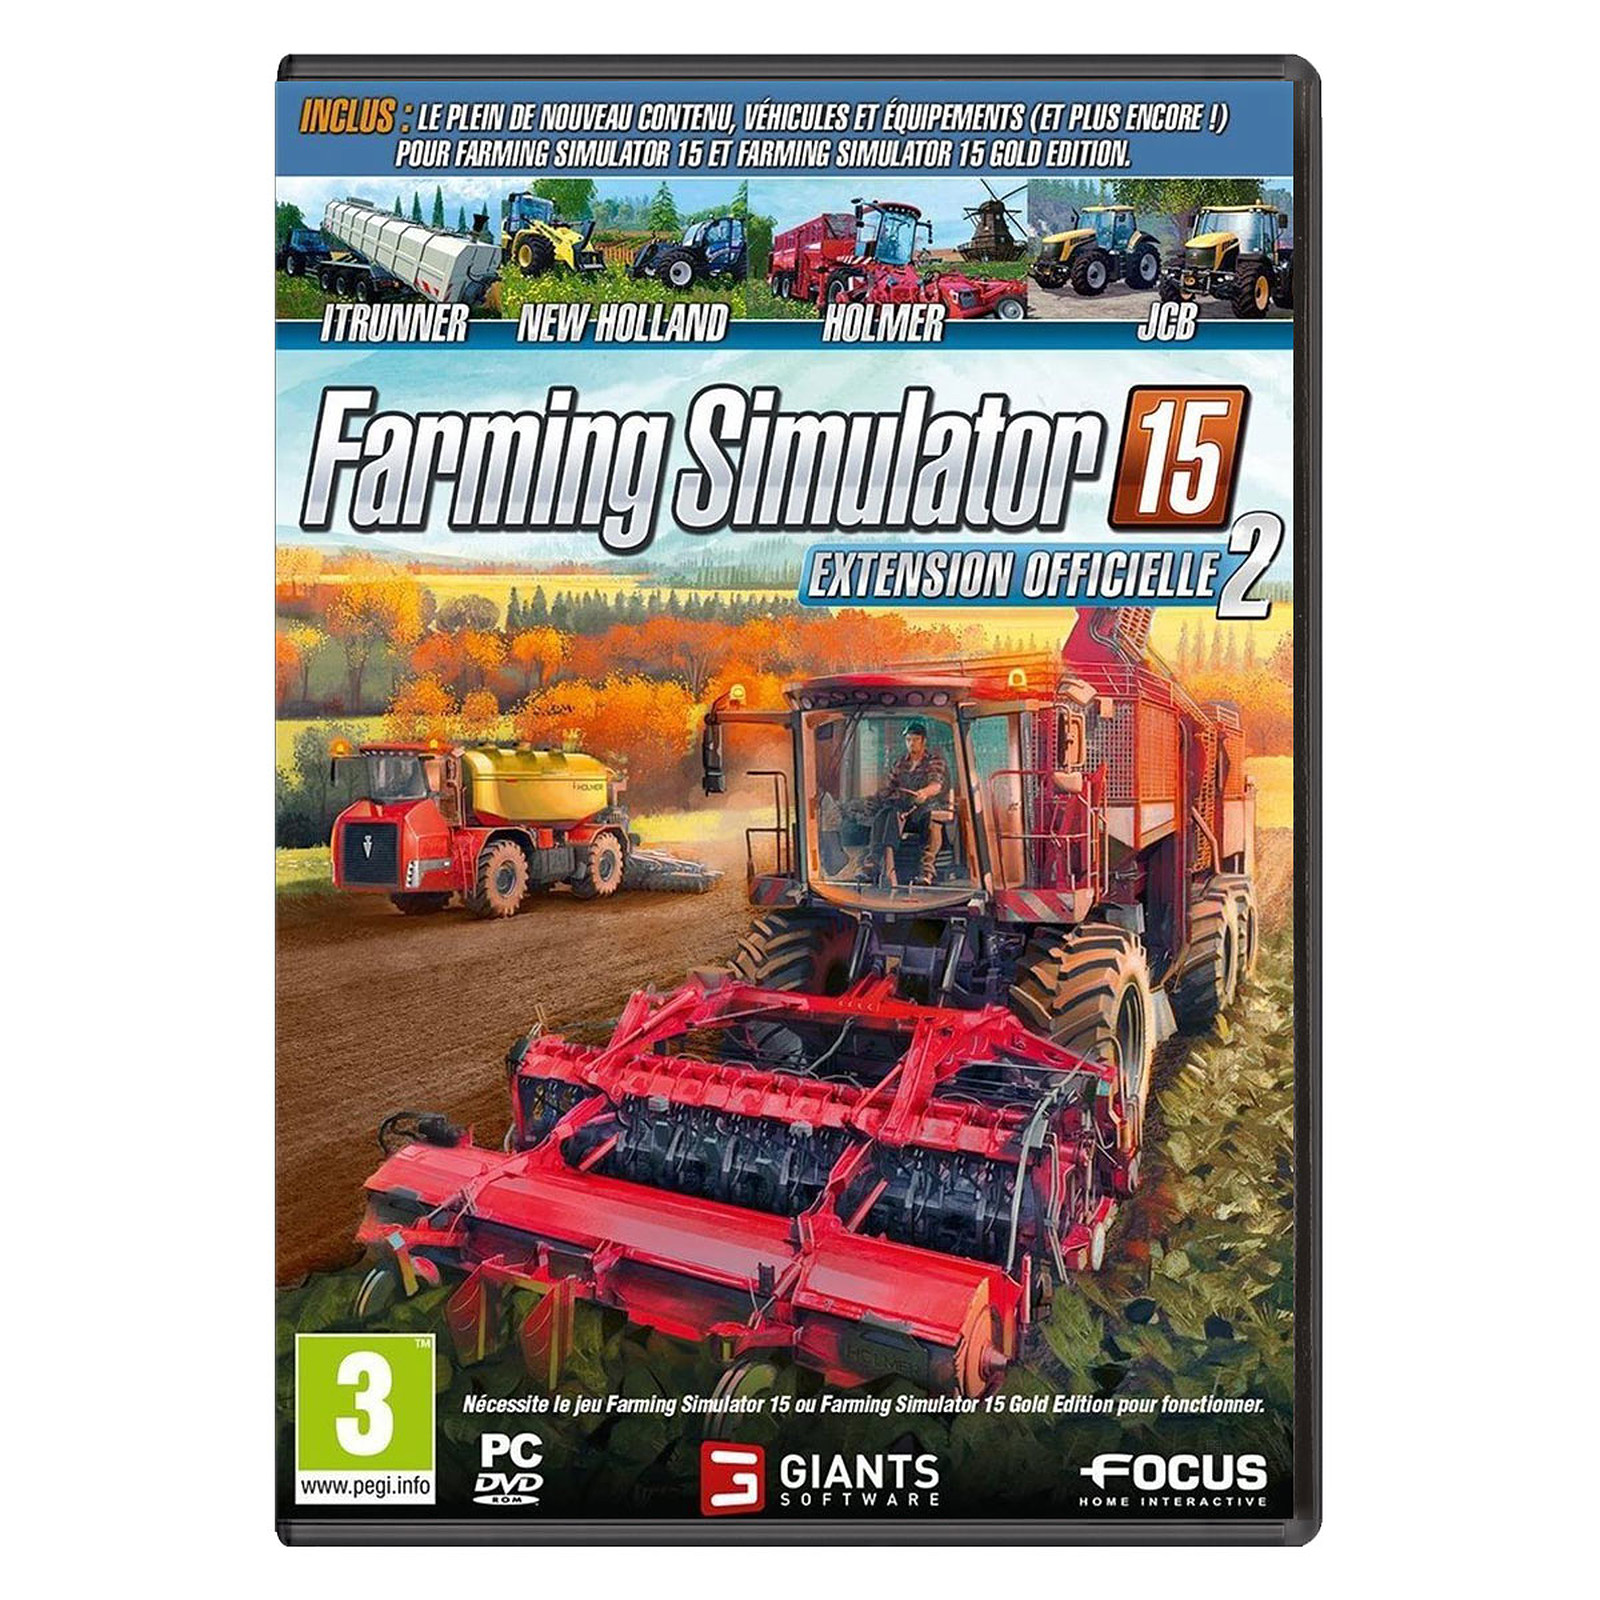 Farming Simulator 15 - Extension Officielle 2 (PC)